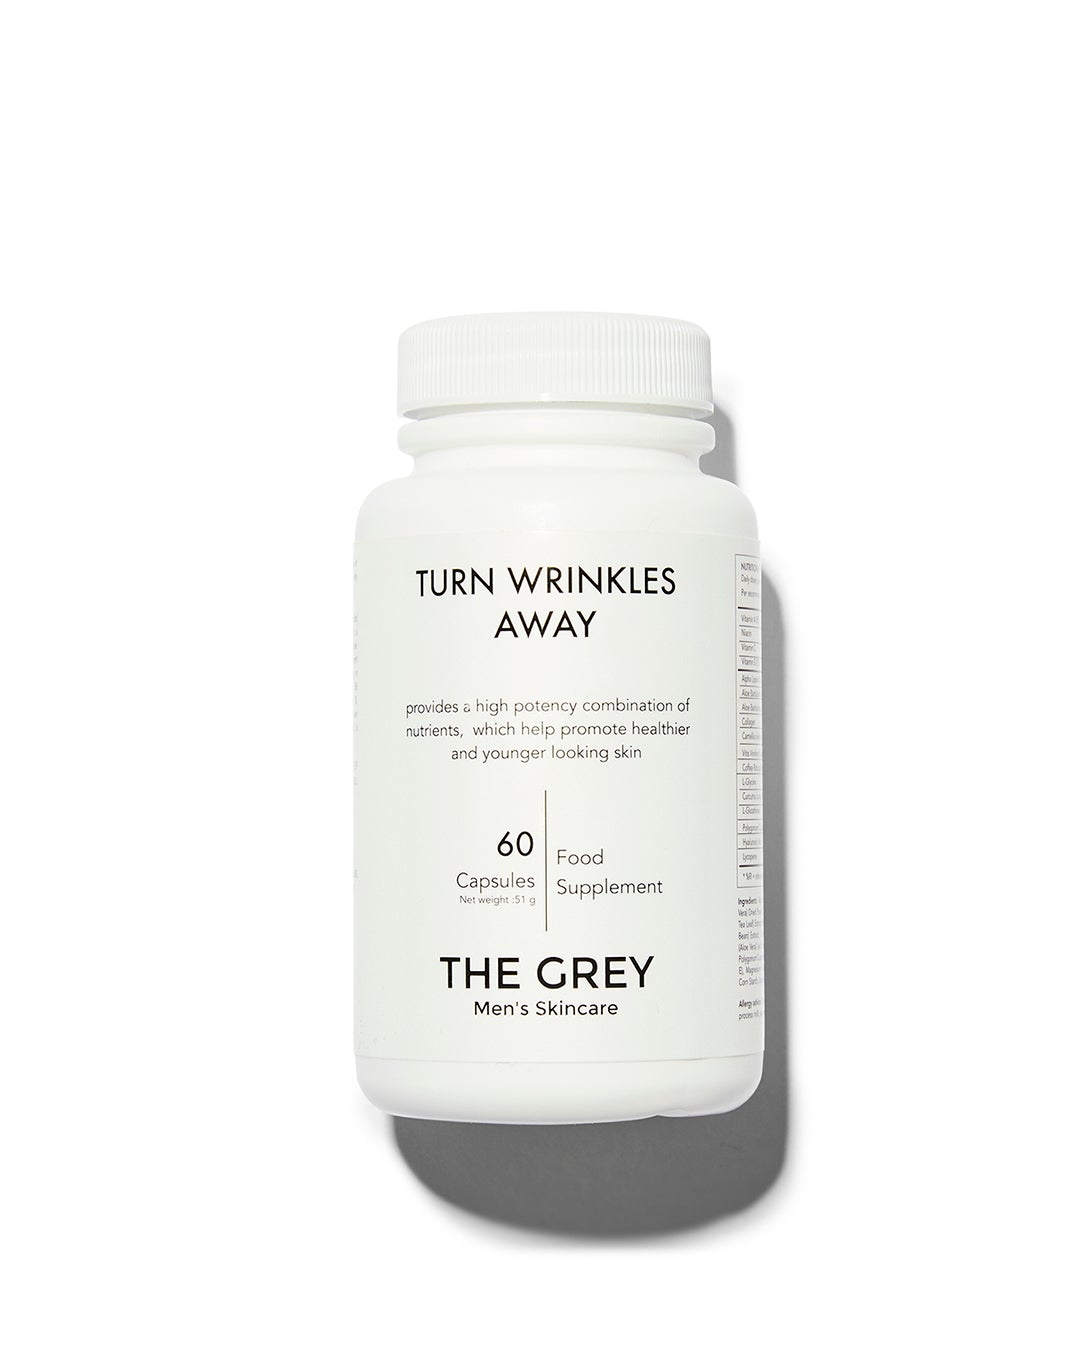 The Grey | Turn Wrinkles Away Supplements